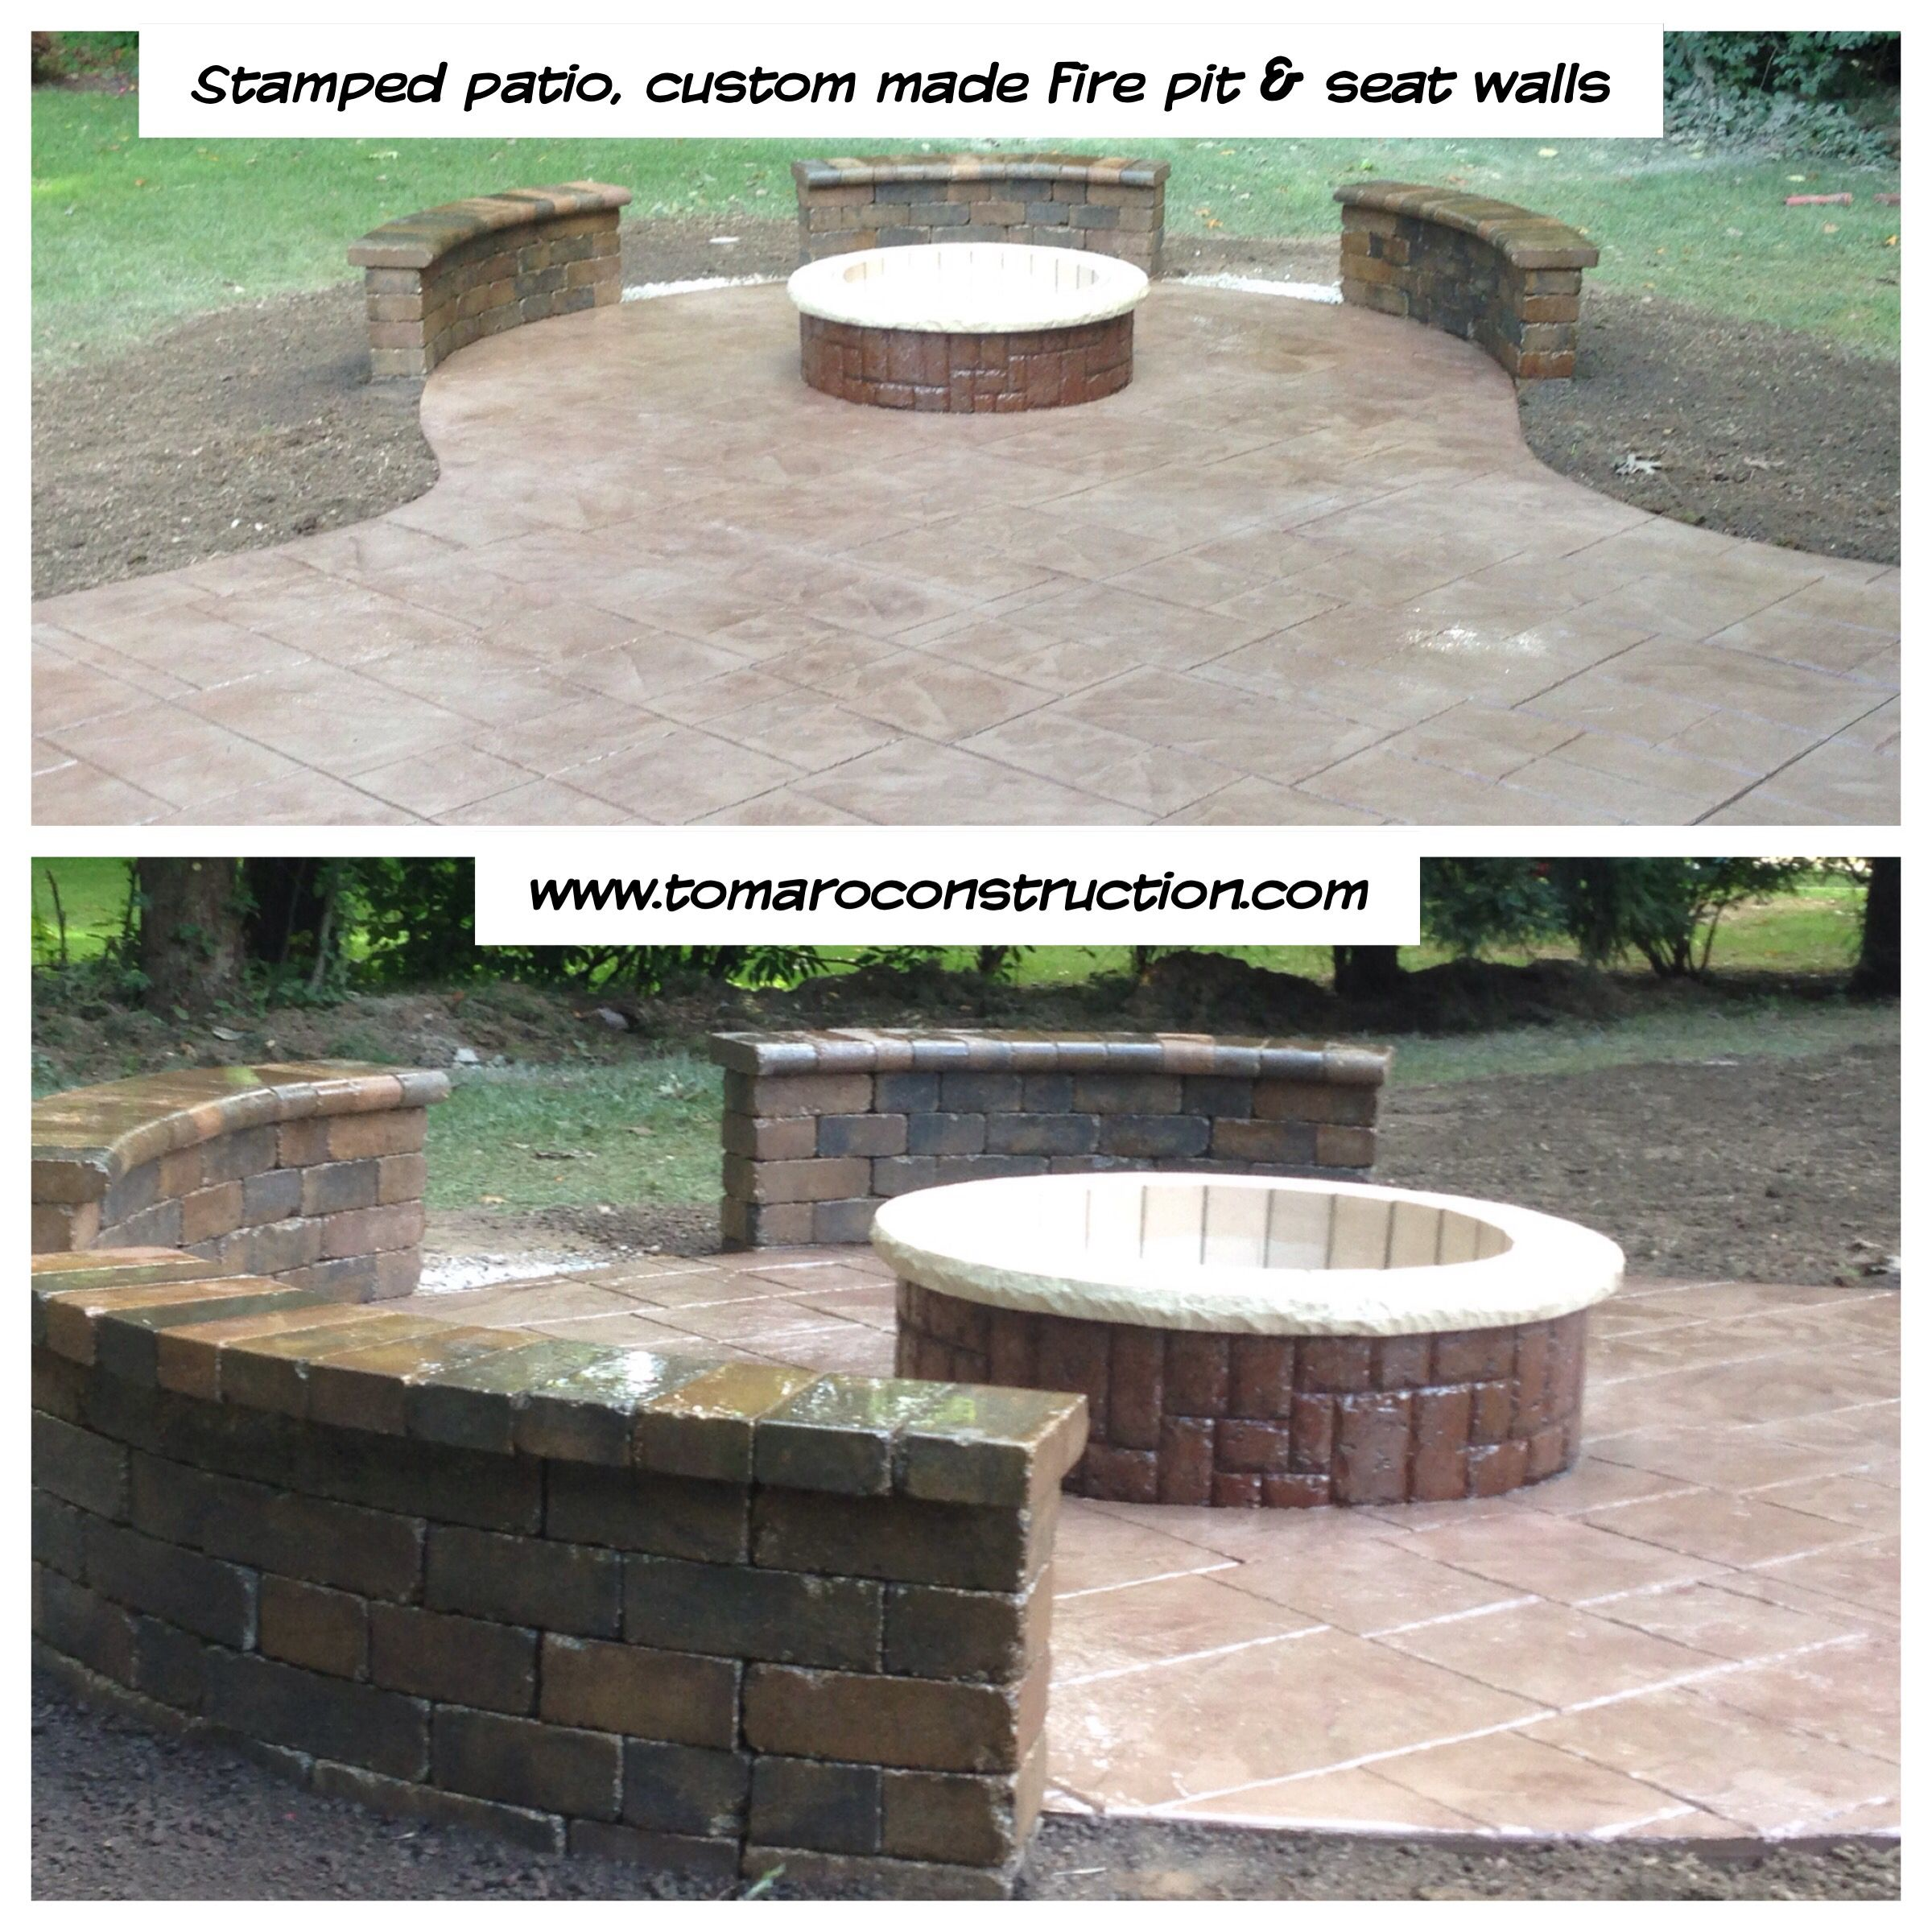 Stamped Concrete Patio With Custom Fire Pit & Seat Walls